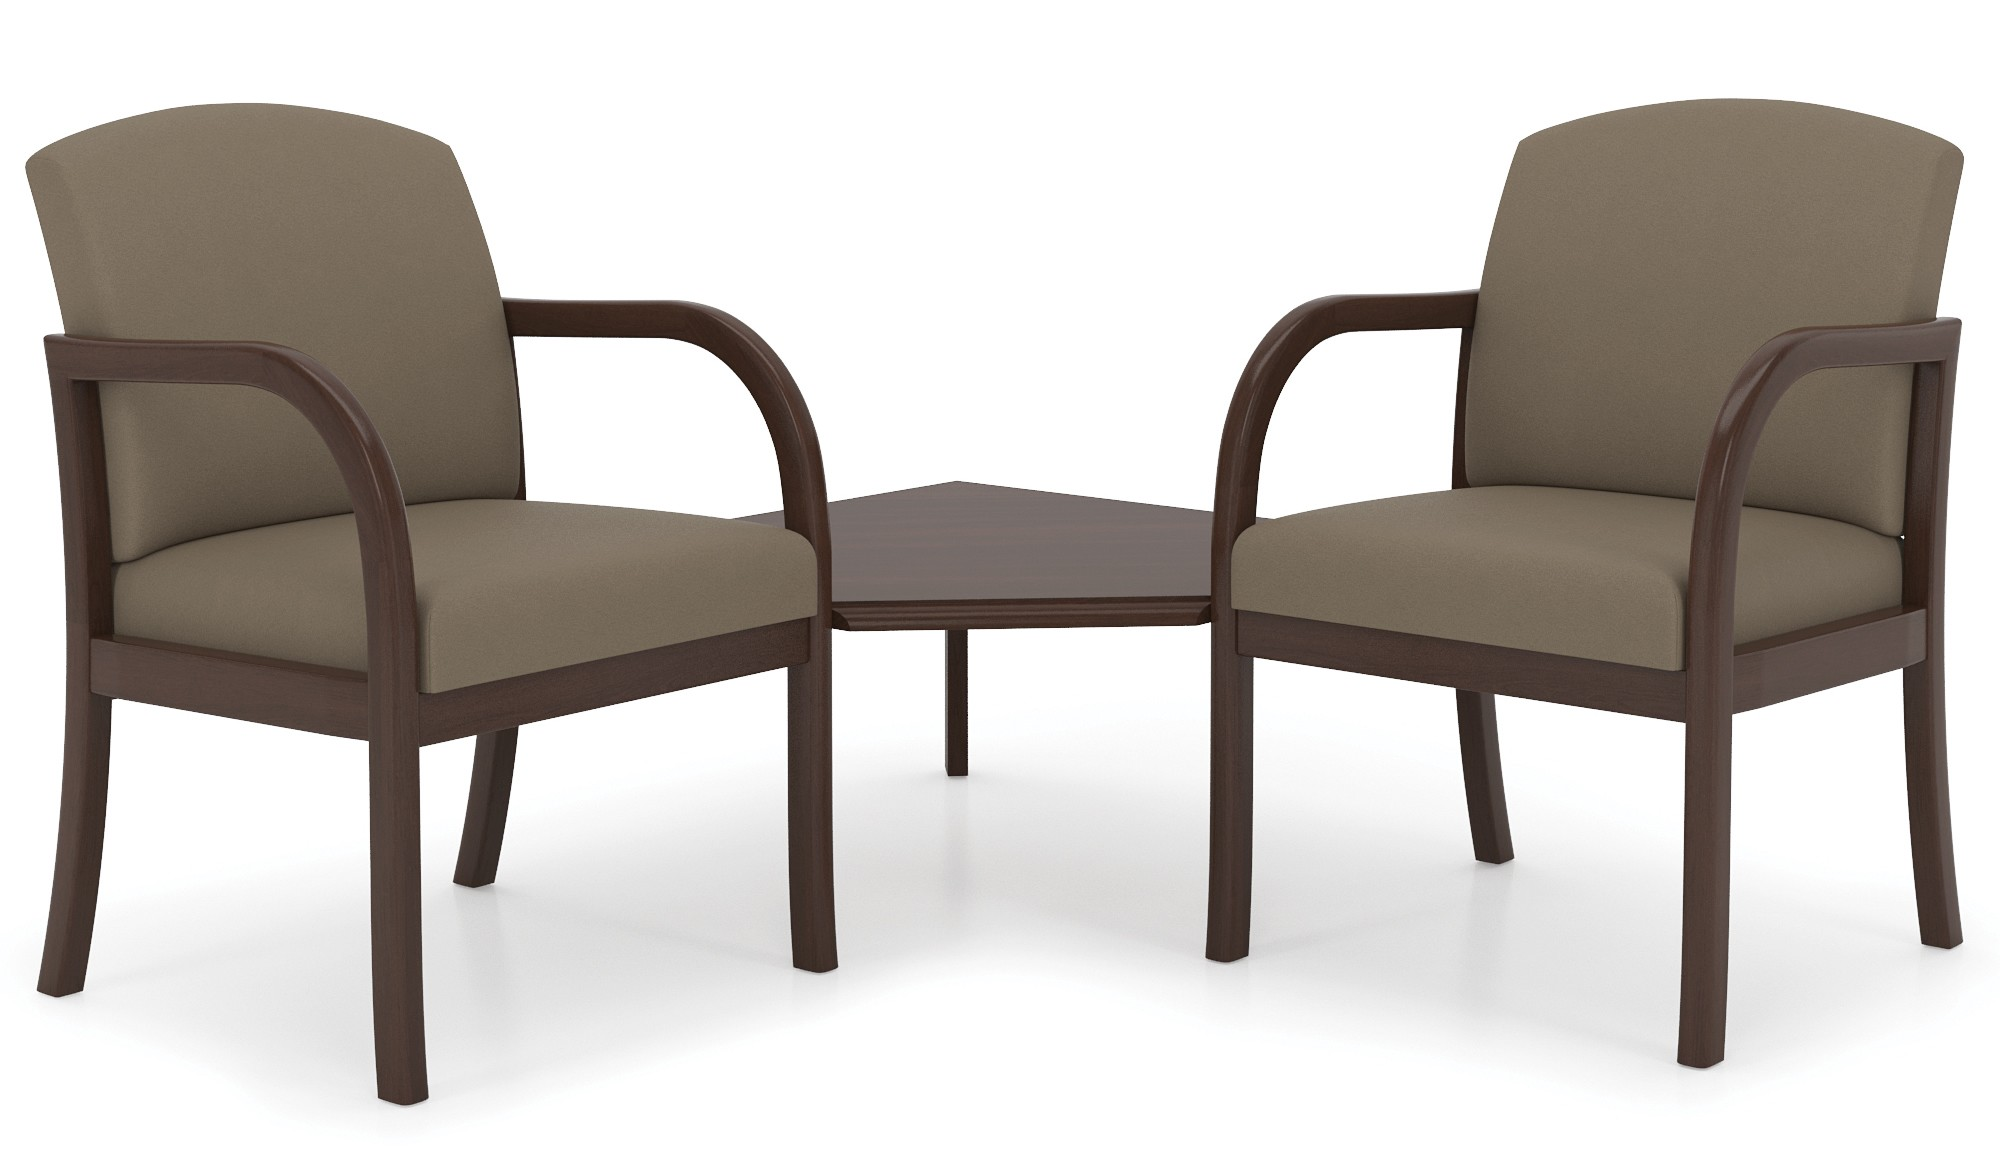 Lesro Weston Series 2 Seat Reception Chairs w/ Connecting Corner Table